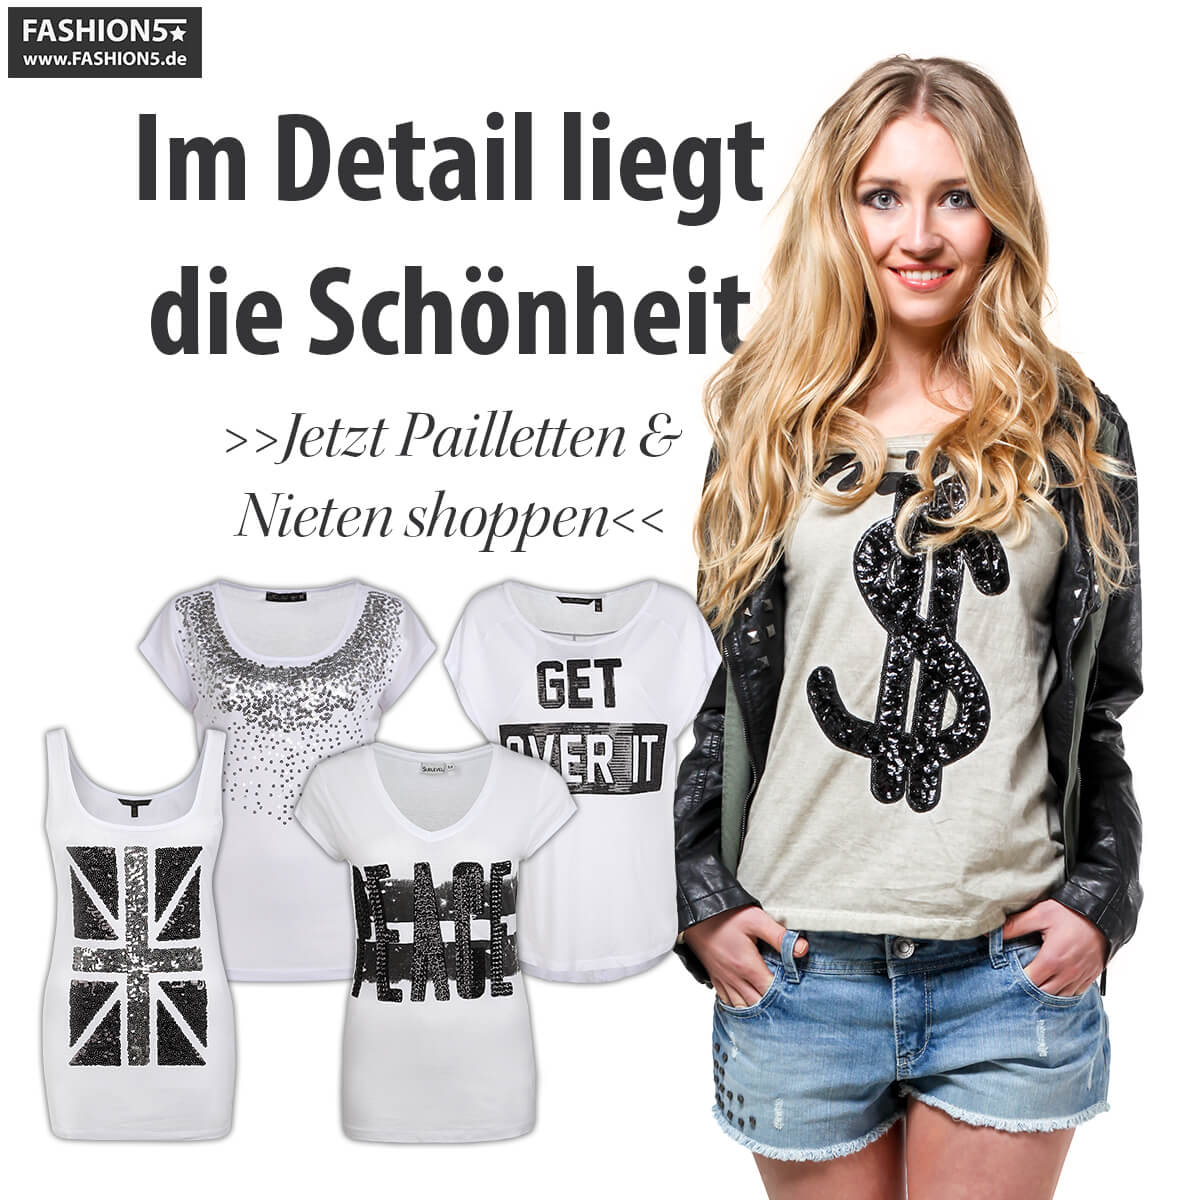 Pailletten & Nieten bei FASHION5